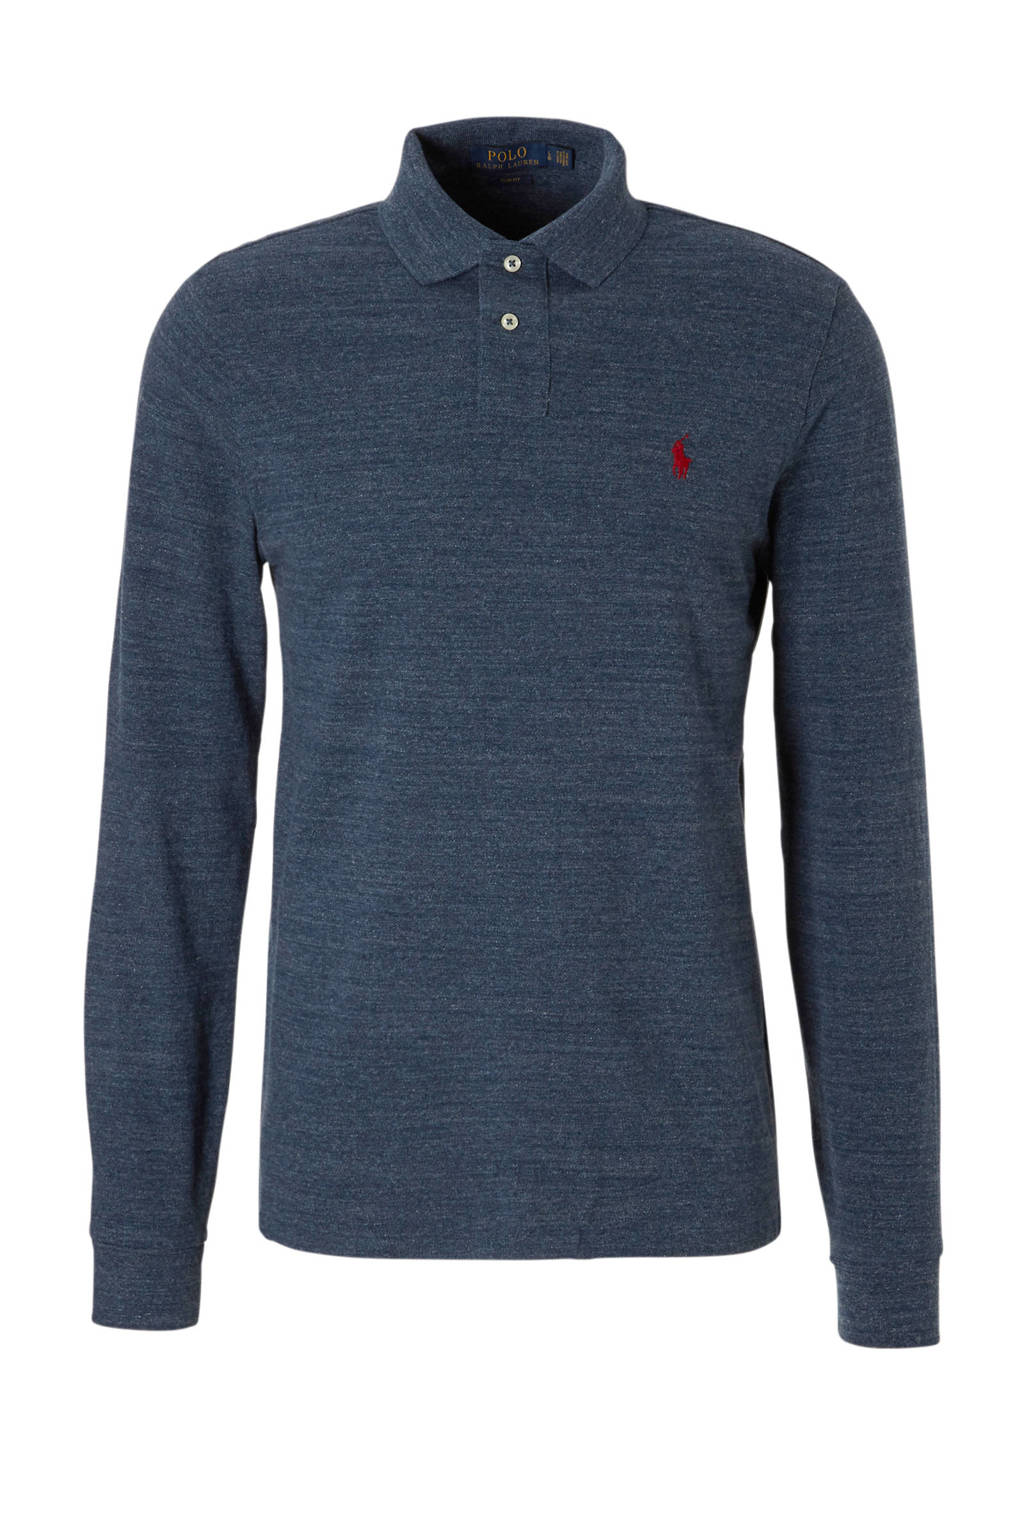 POLO Ralph Lauren slim fit polo, Blauw